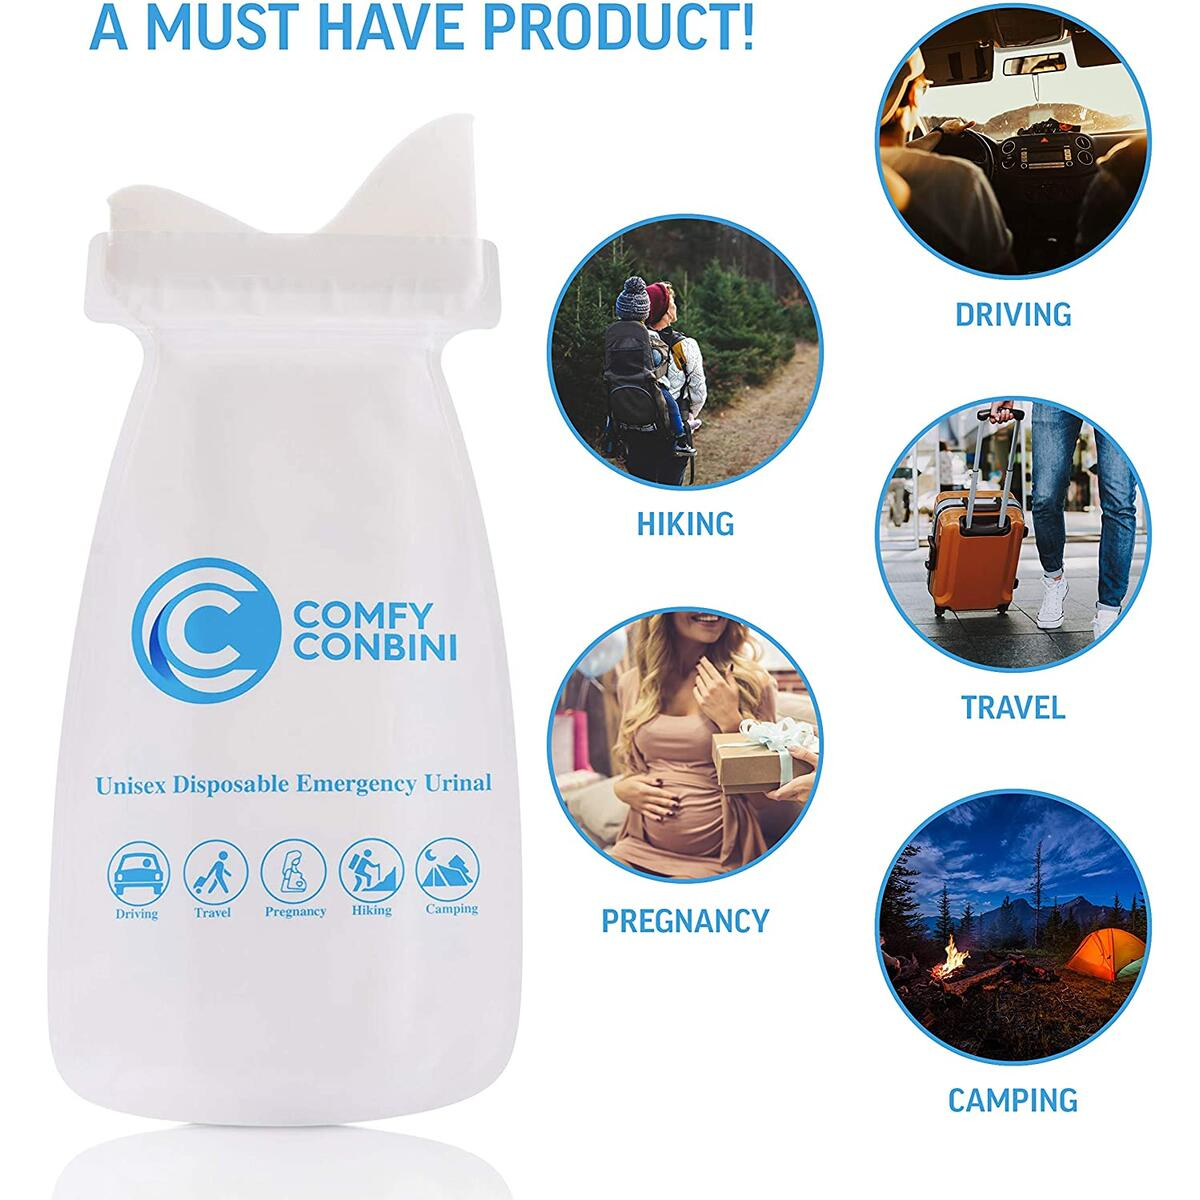 Comfy Conbini Urinal Bags Male/Female Bathroom Bag for Car, Kids, Bathroom, Camping, Hiking - Leak-Proof